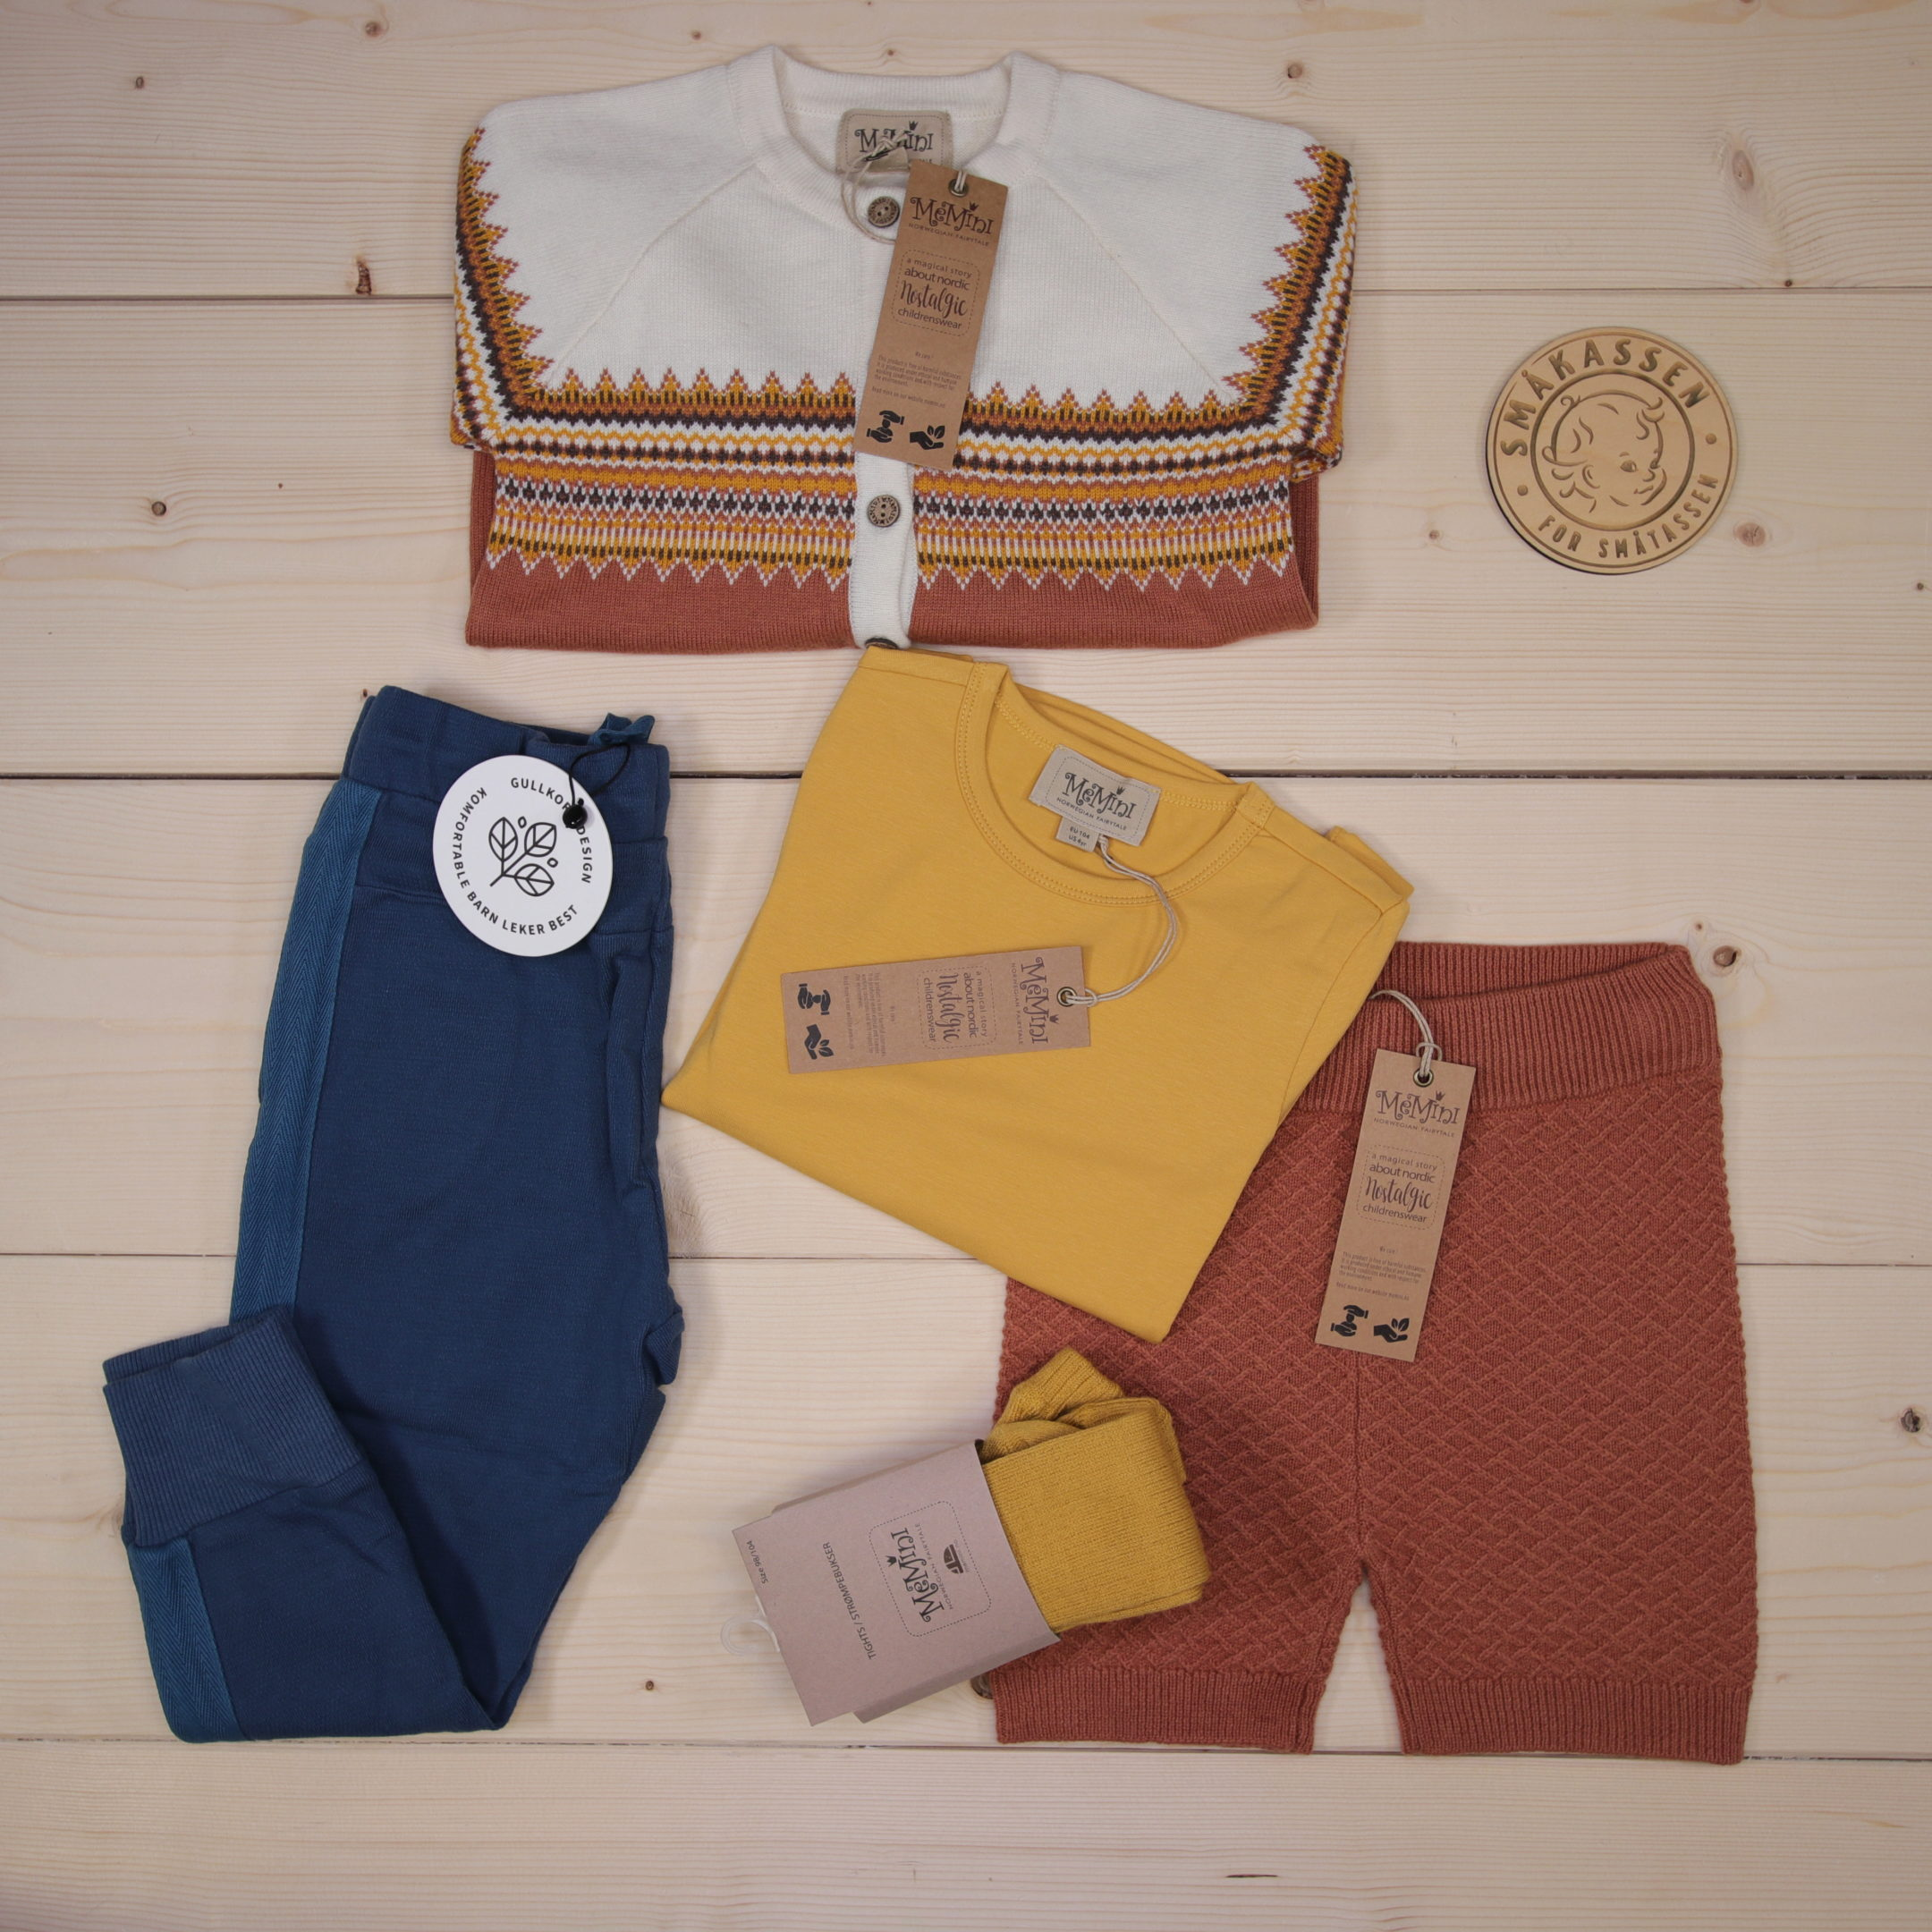 This is a 1500 NOK* Småkassen that we prepared for a boy  in the styles cute, cool, and colorful in size 104